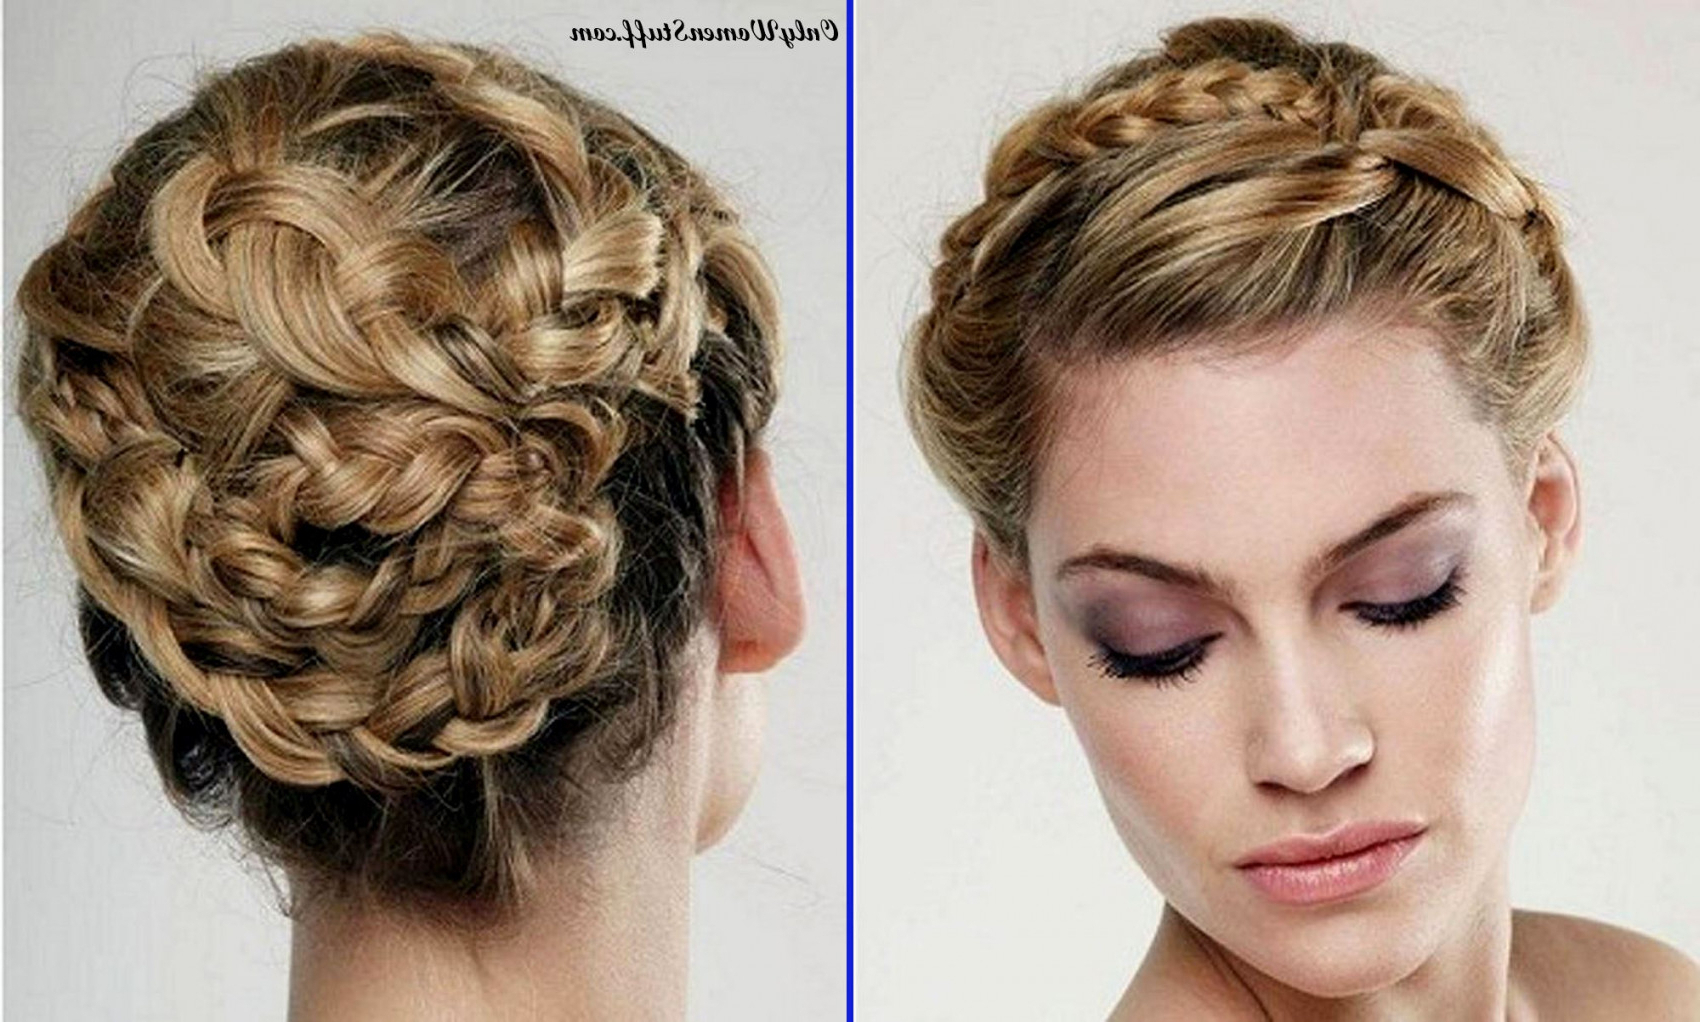 Most Graceful Wedding Hairstyles Updos Short Hair | Latest In Cute Wedding Hairstyles For Short Hair (View 21 of 25)